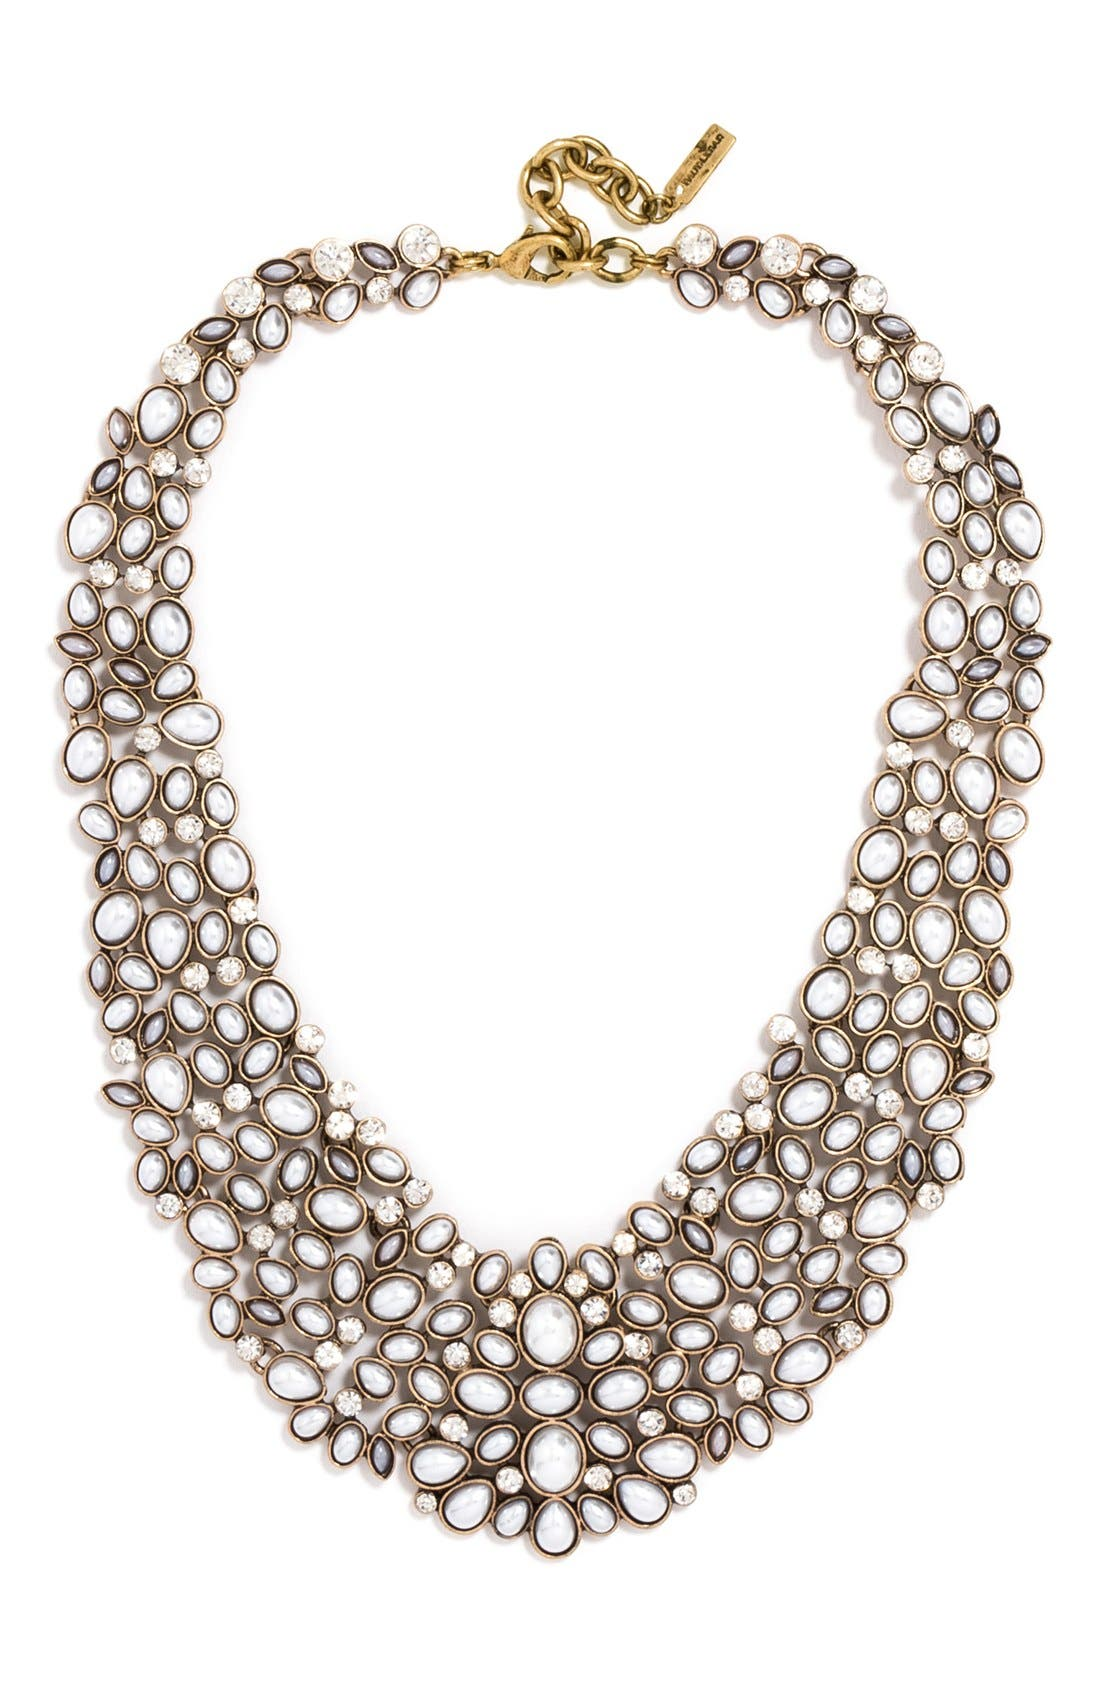 'Kew' Crystal Collar Necklace,                             Main thumbnail 1, color,                             PEARL/ GOLD